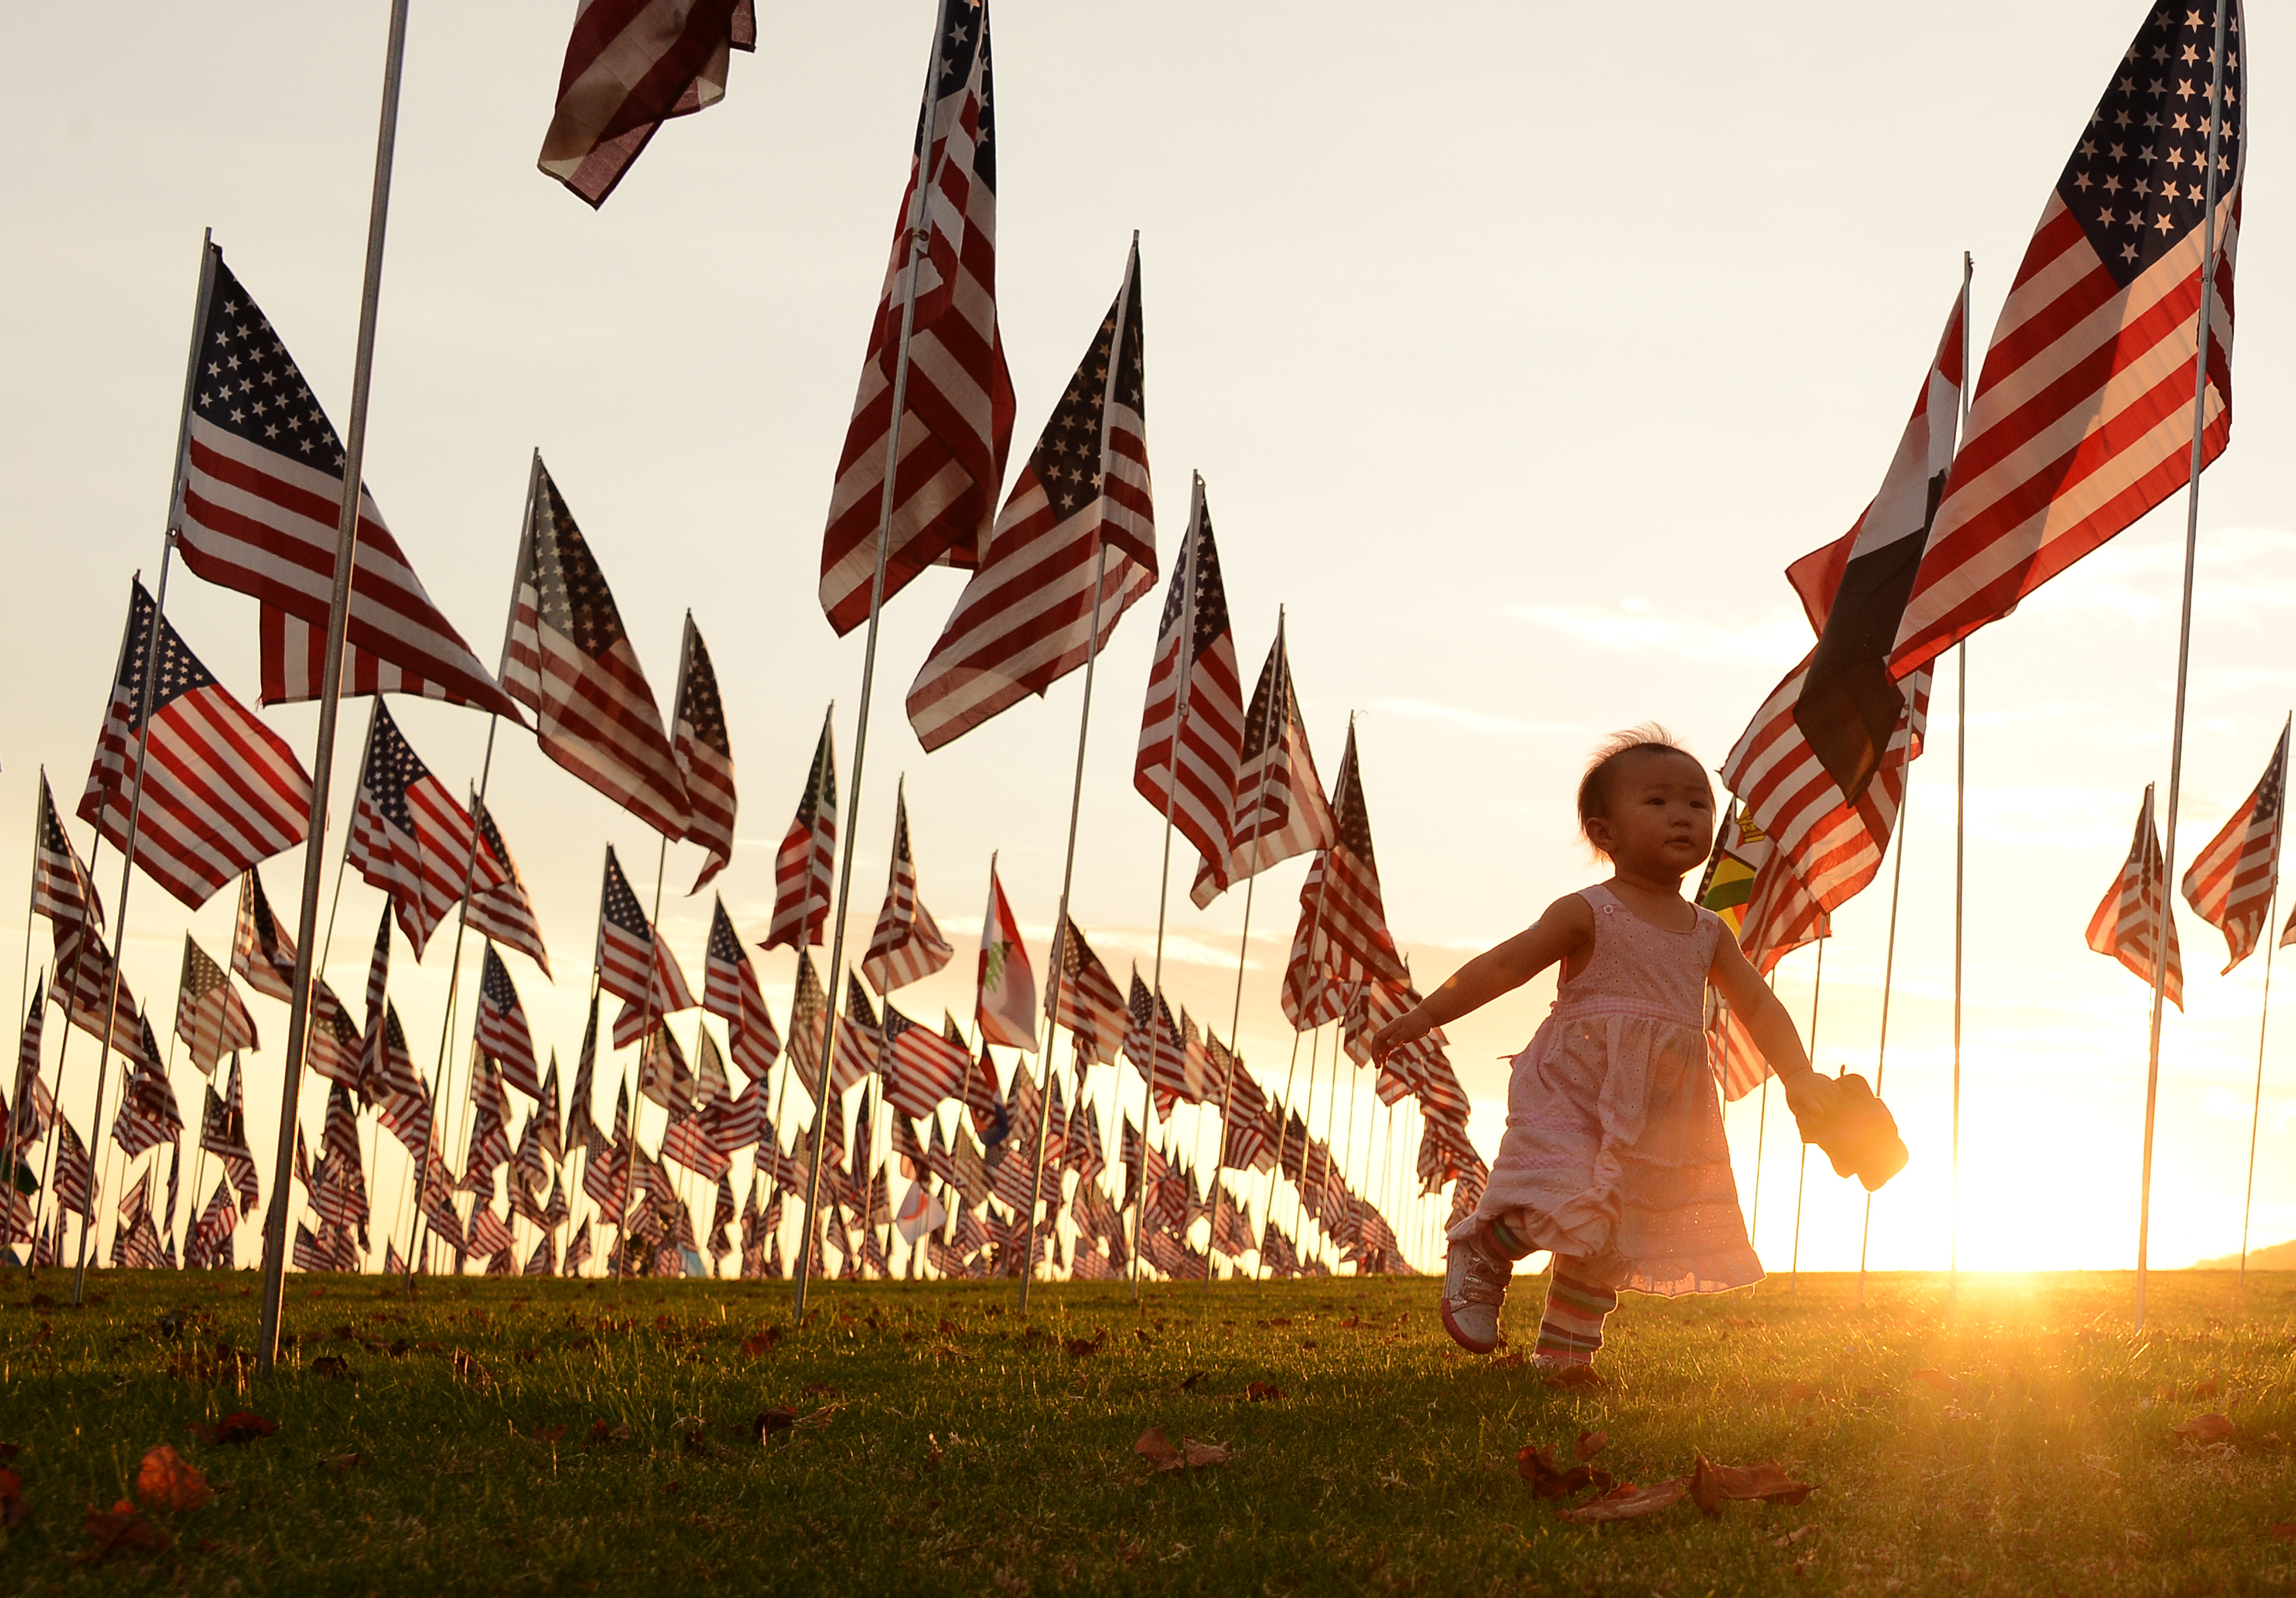 Collective trauma: A child walks amongst US national flags erected to honor victims of the 9/11 attacks.